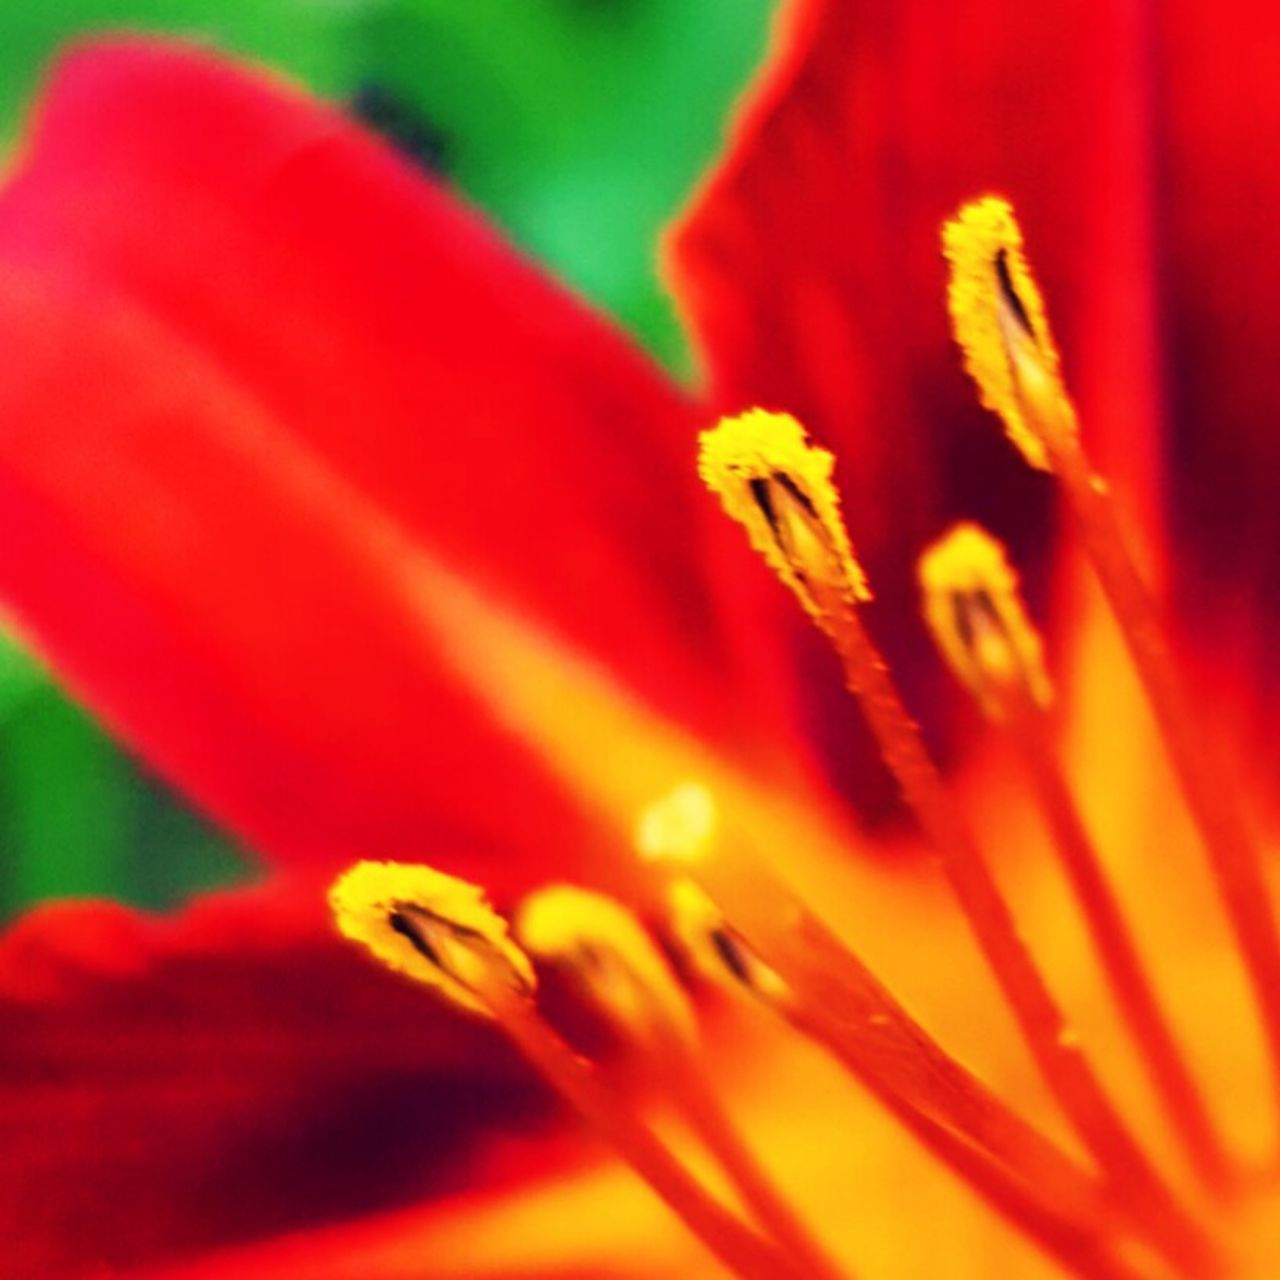 flower, growth, petal, fragility, flower head, beauty in nature, nature, freshness, plant, selective focus, vibrant color, close-up, stamen, red, no people, soft focus, blooming, yellow, outdoors, day, day lily